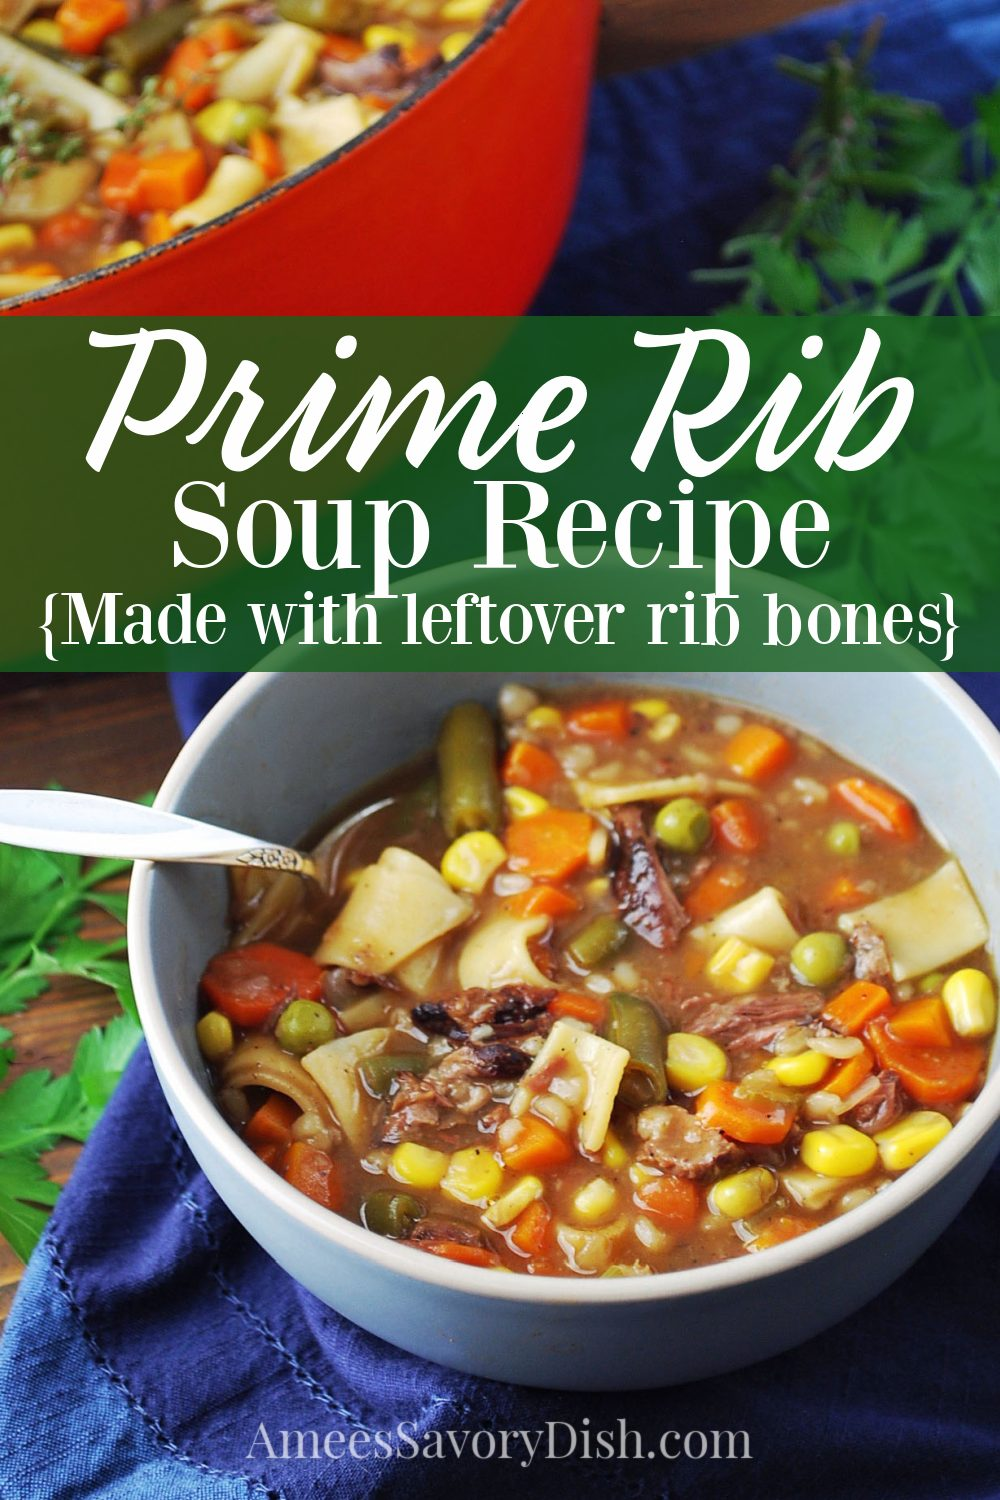 A mouthwatering recipe for the best homemade Prime Rib soup made with leftover Standing Rib Roast. This flavorful beef vegetable soup recipe is made with Pappardelle pasta, and I've also included a gluten-free recipe variation swapping the pasta for potatoes. Either way, it's incredibly delicious!! #primeribsoup #standingribroastsoup #beefvegetablesoup #beefsoup #souprecipe via @Ameessavorydish